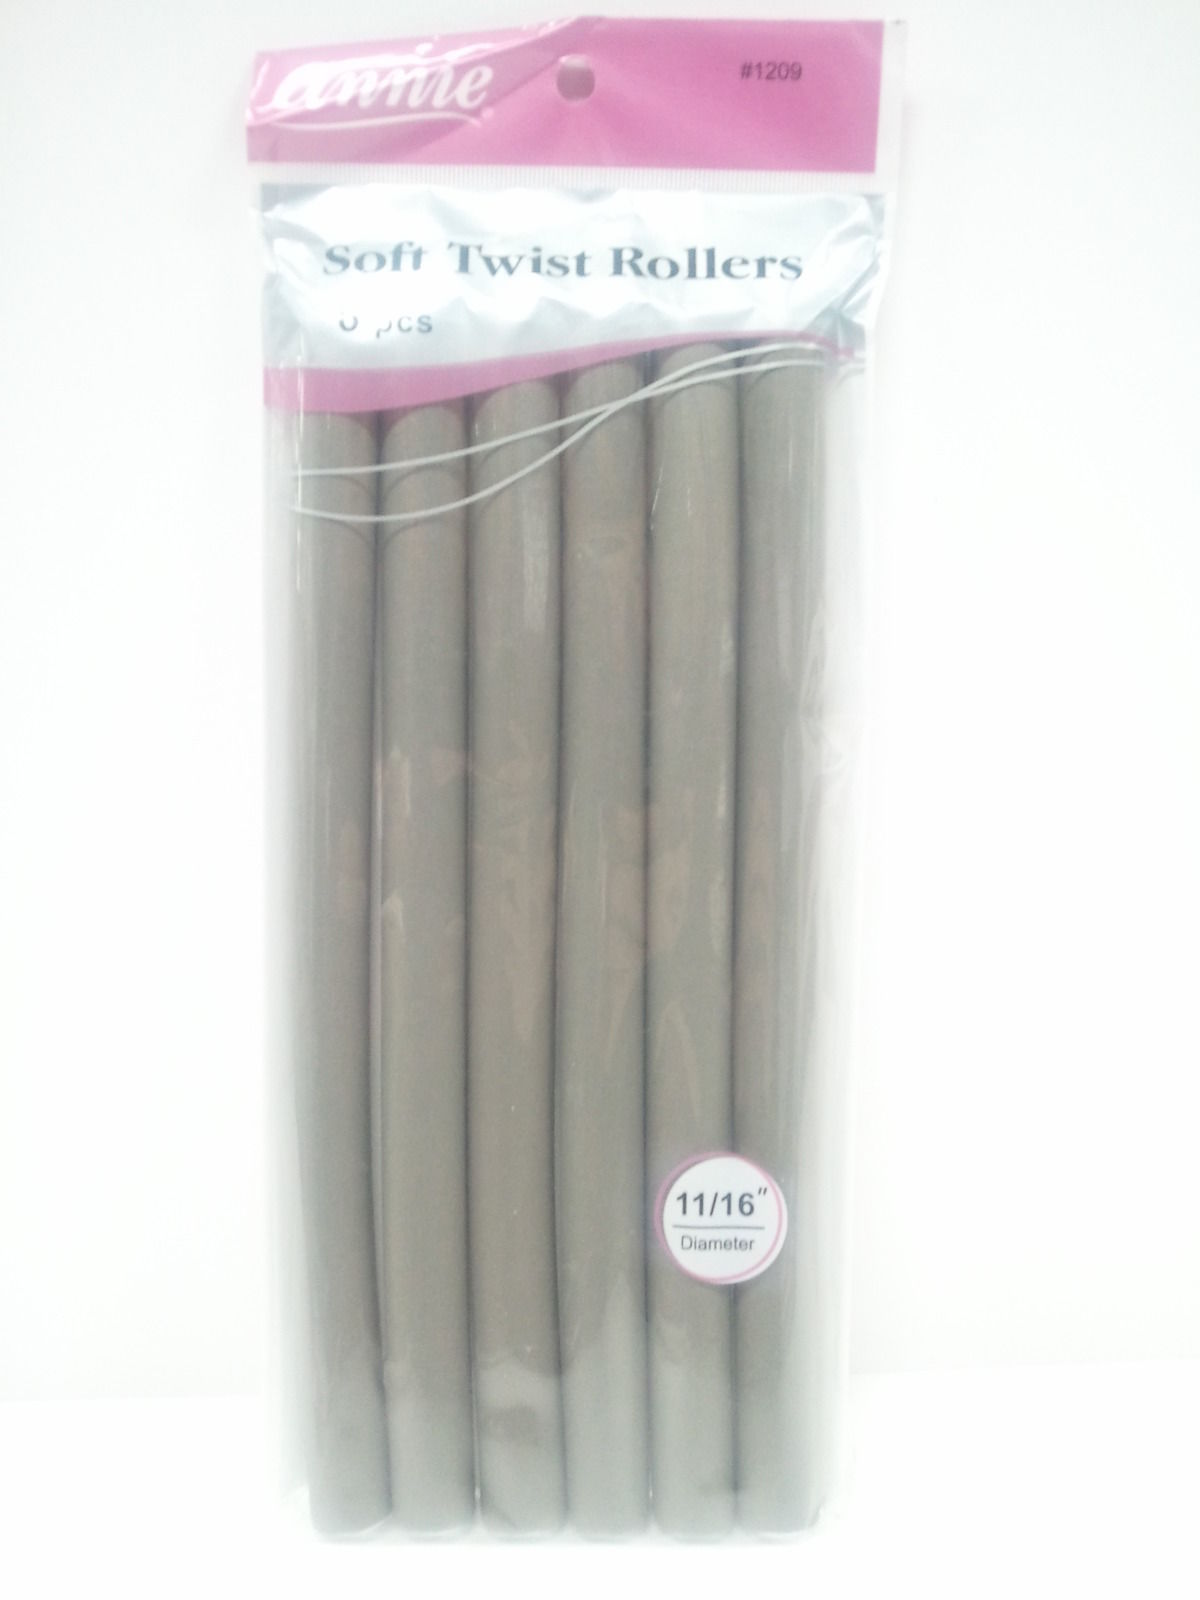 "ANNIE SOFT TWIST ROLLERS #1209 TOTAL 6PCS 11/16"" DIAMETER  10"" LONG"